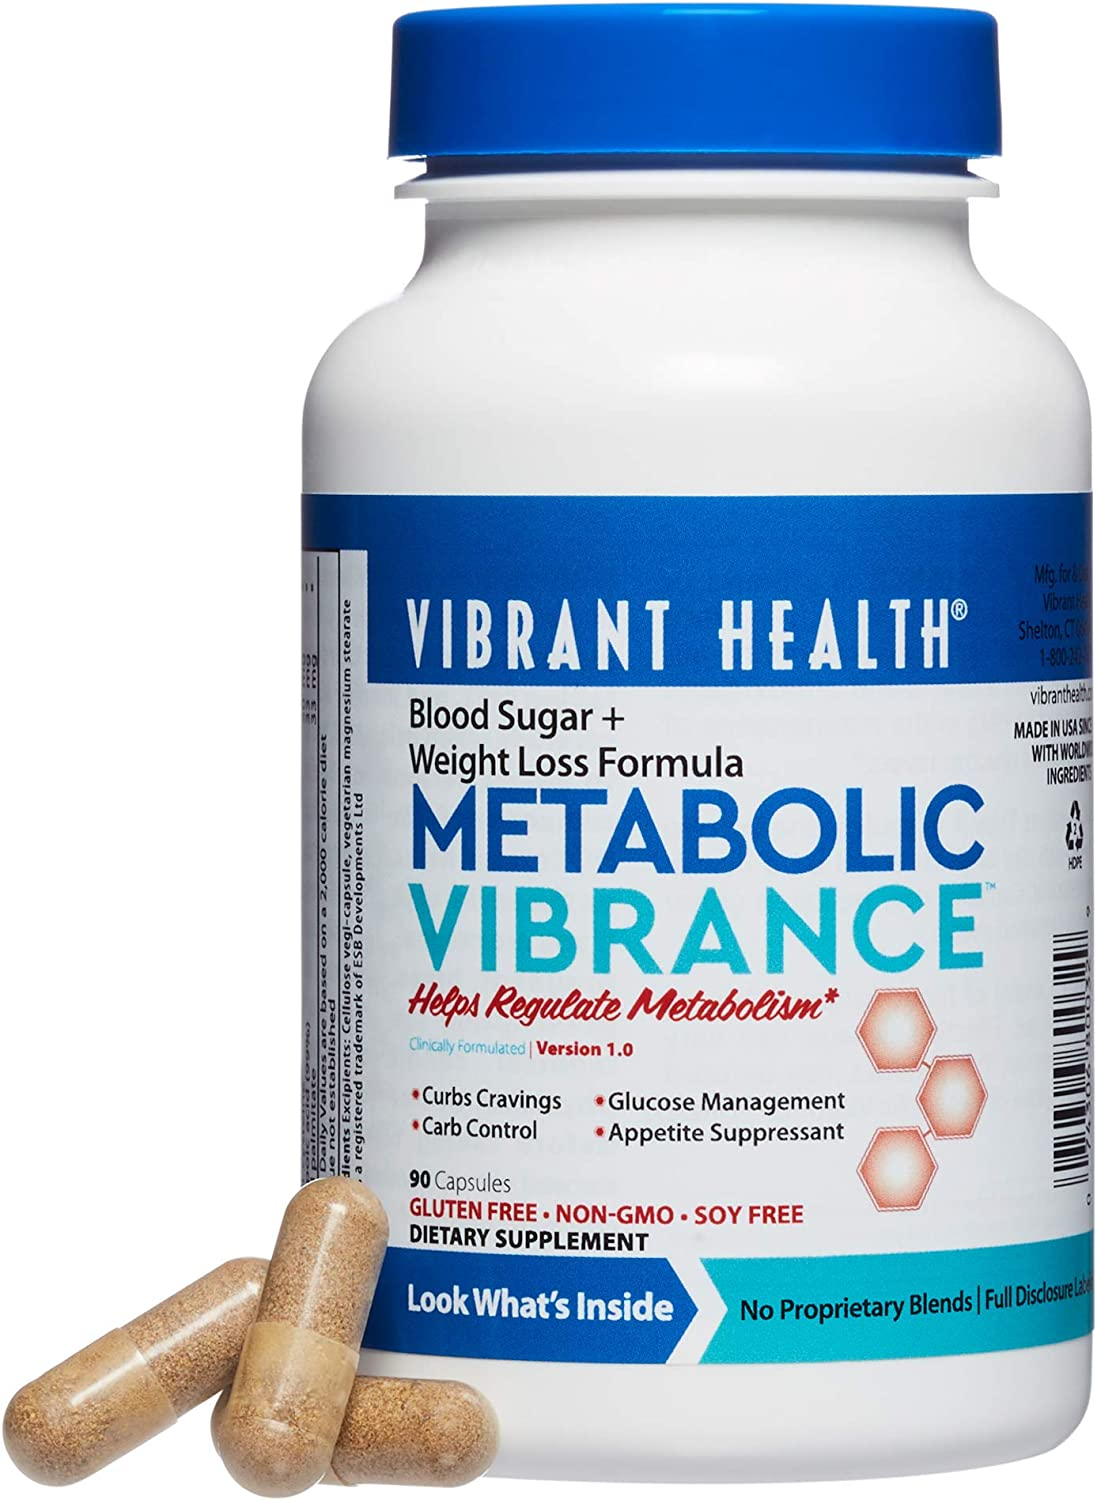 Vibrant Health – Metabolic Vibrance, Supports a Healthy Metabolism, Glucose Management, and Helps Control Appetite and Cravings, Gluten Free, Vegetarian, Non-GMO, 90 Count FFP